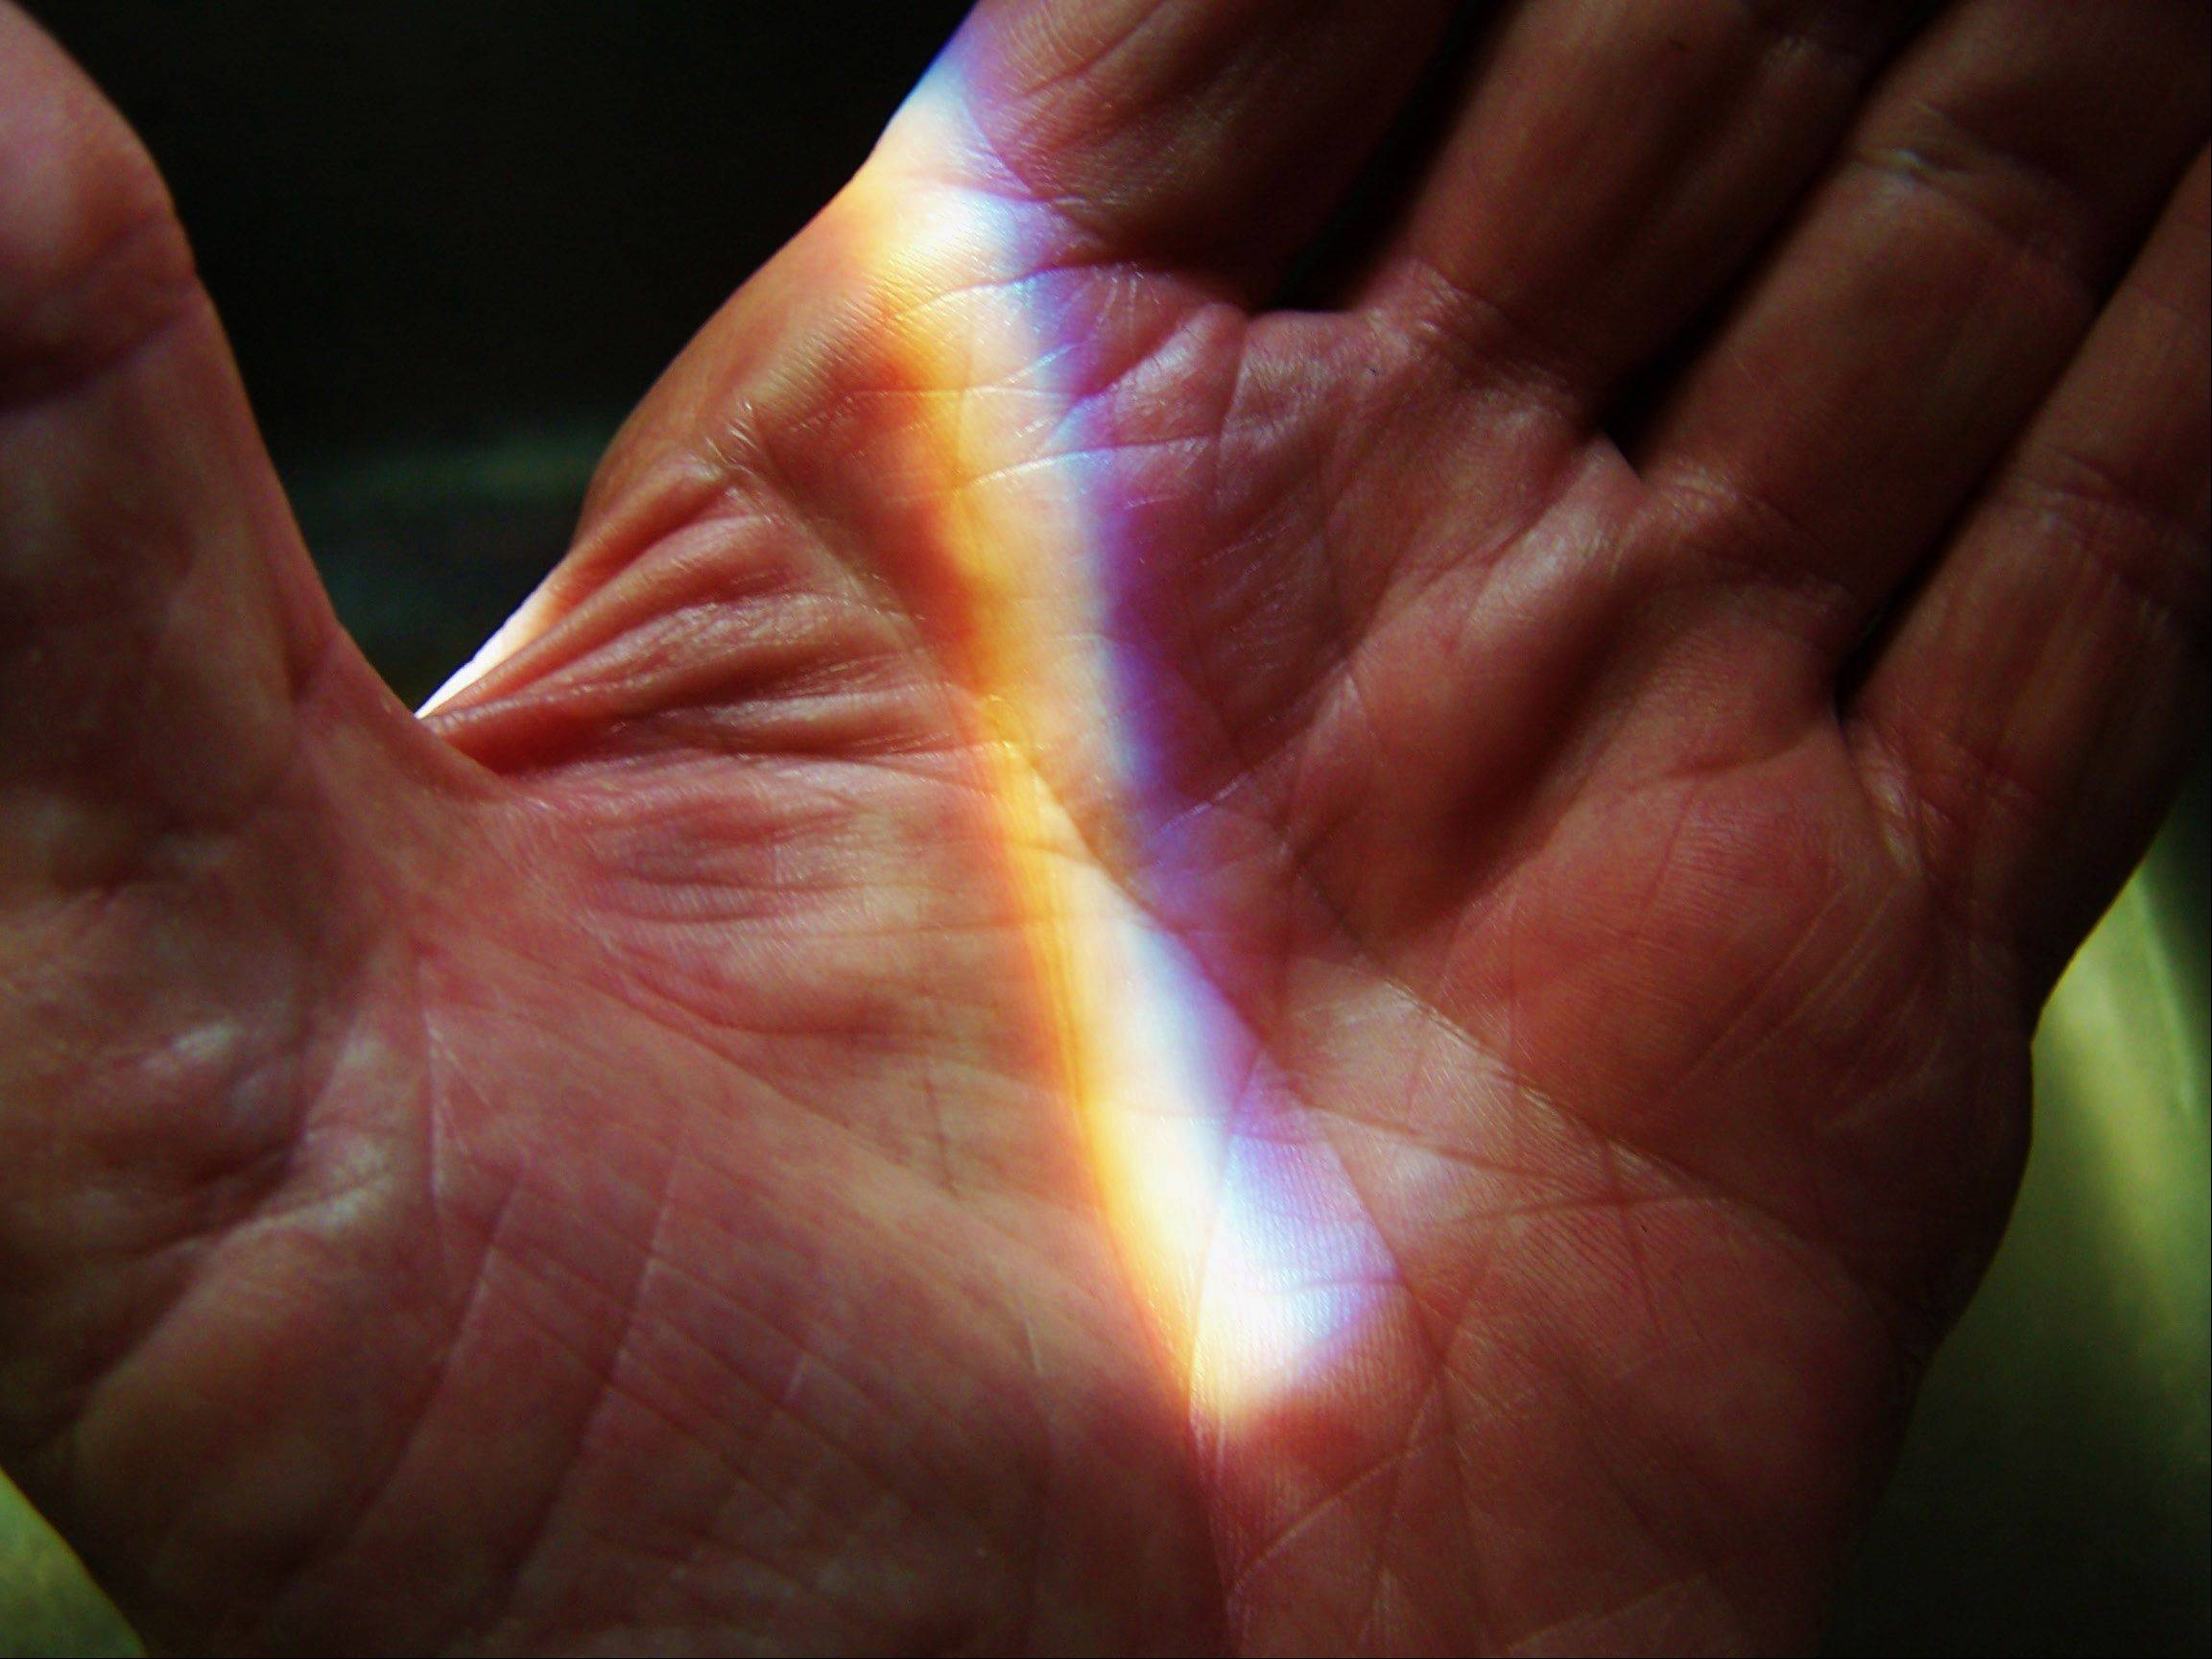 A small rainbow is formed in the light shining on Ken Kitzing's hand on Tuesday, April 30.